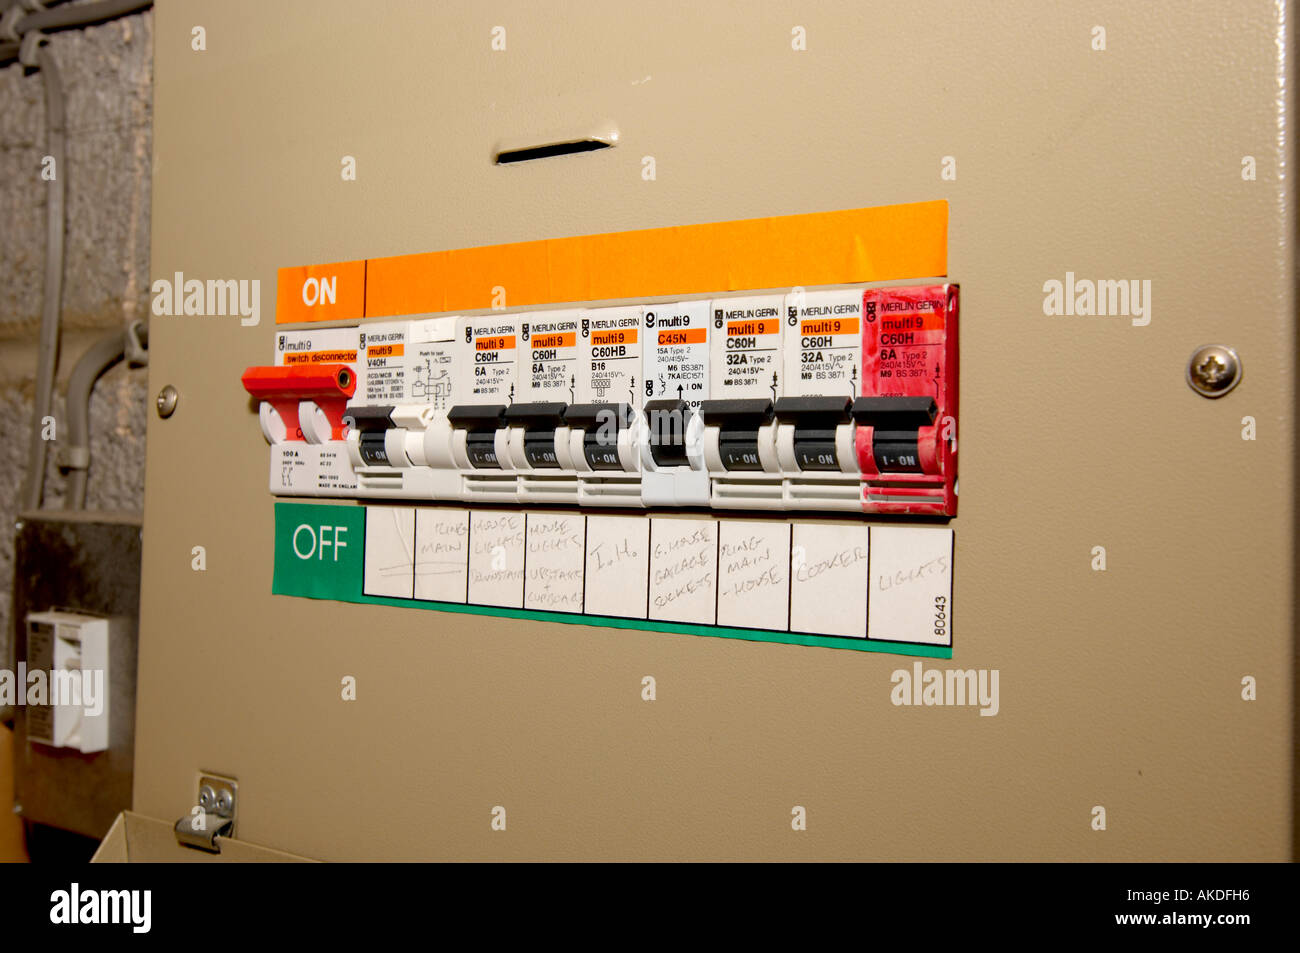 Electrical Fuse Box Regulations Wiring Diagram Services Electric Home Household Database U2022 Rh Mokadesign Co Old Boxes Circuit Breaker